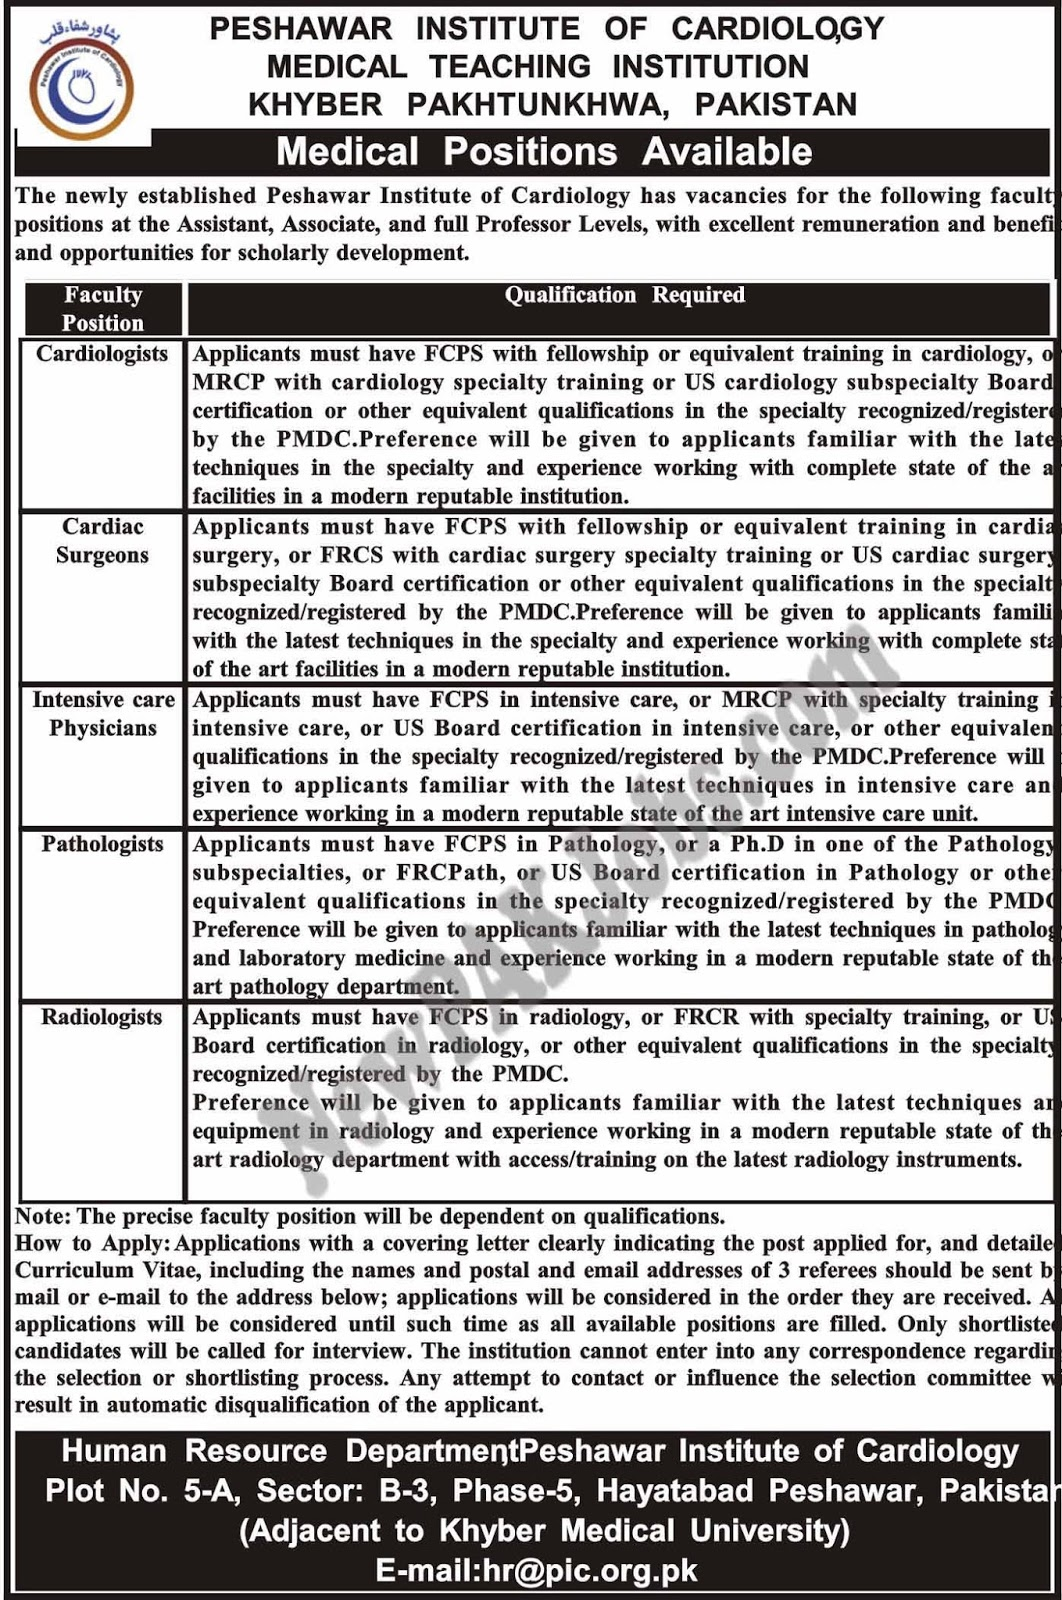 Last Date:  31 Jan 2018  Location:  KPK  Posted on:  16 Jan 2018  Category:  Other  Organization:  Health Department    Website/Email:  hr@pic.org.pk  No. of  Vacancies  N/A  Education required:  FRCS/MRCP/PMDC/FCPS